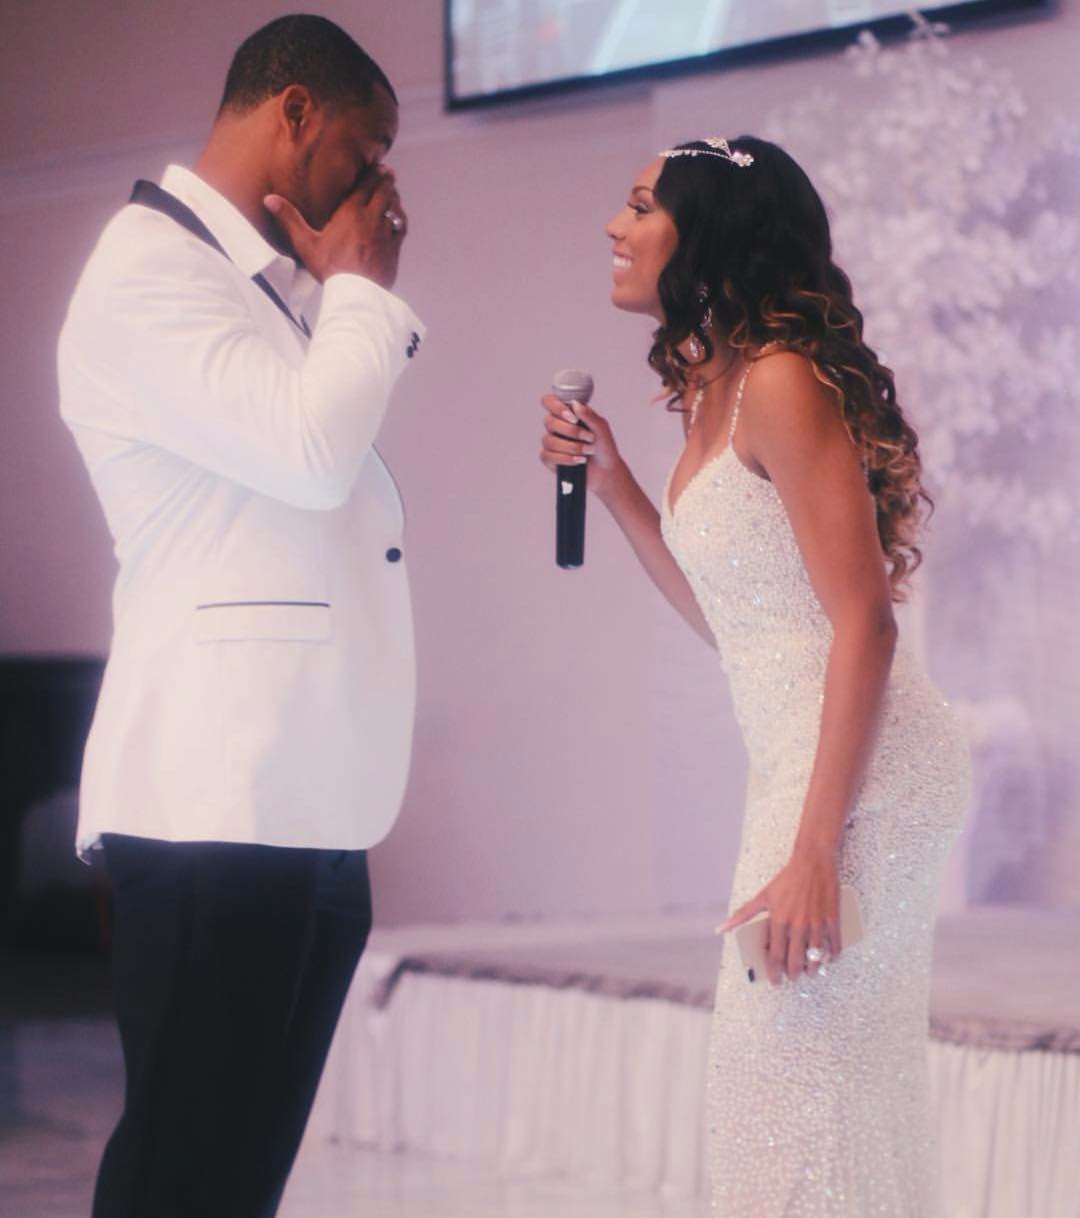 Dawnielle Baucham singing John Lennons' Wanna Grow Old With You for her husband Brett Hundley on the occasion of their first wedding anniversary. Brett gets emotional as he hears Dawnielle sing.